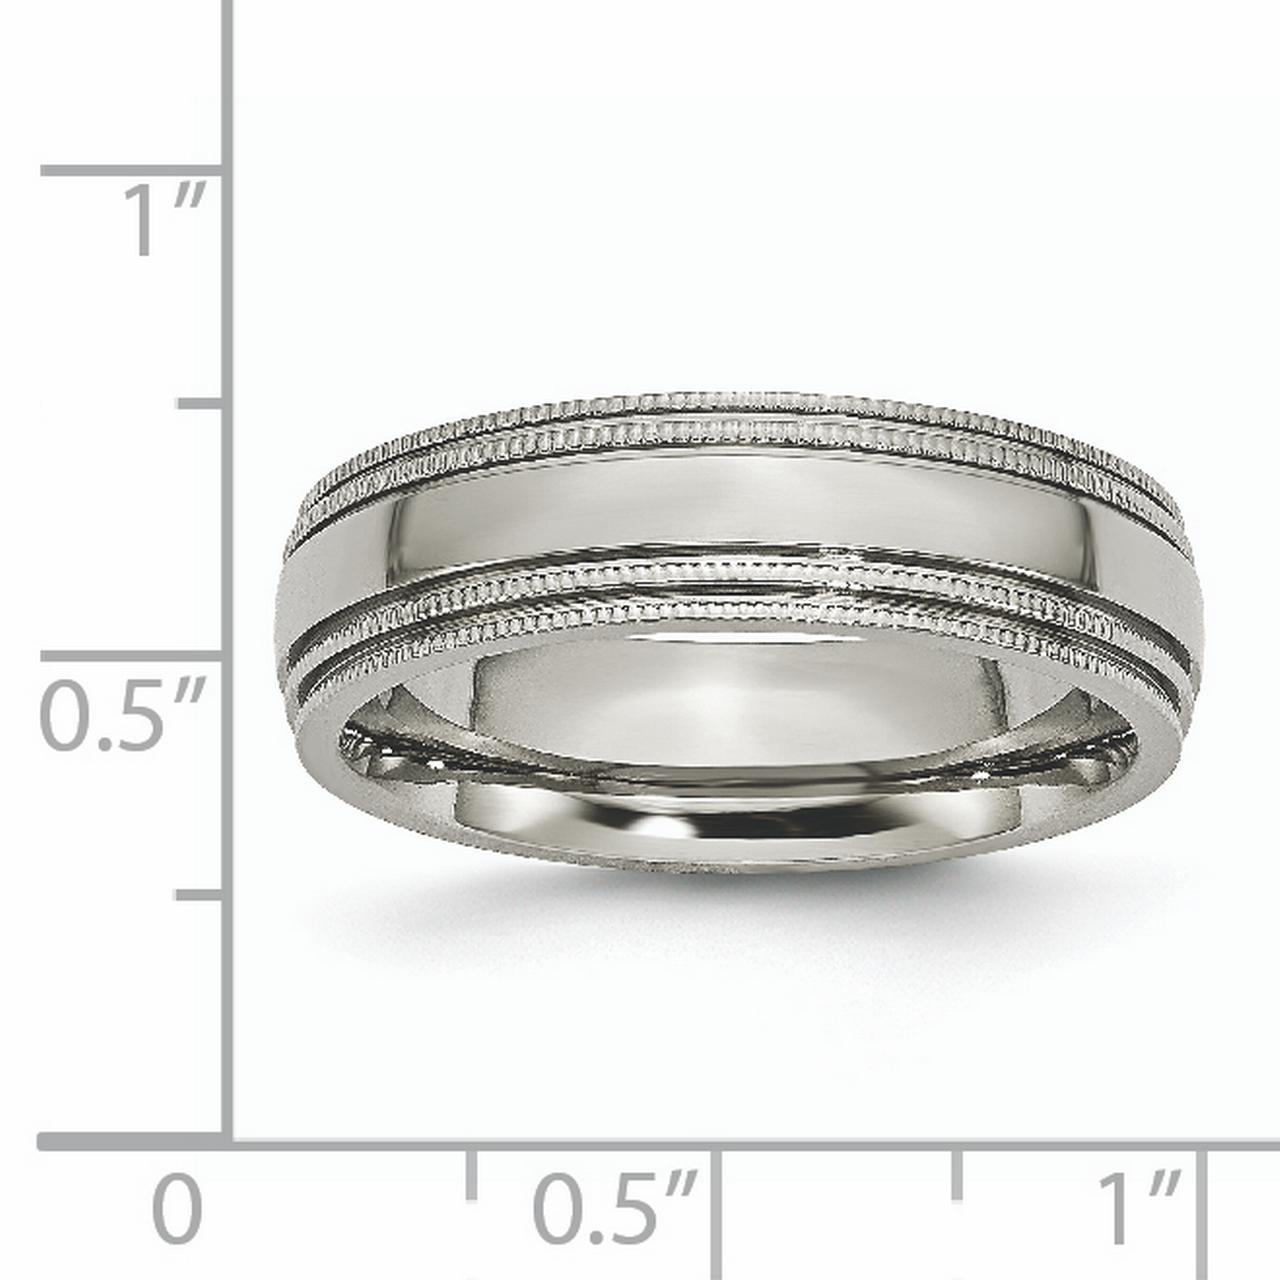 Titanium Grooved and Beaded Edge 6mm Polished Band Ring 8 Size - image 4 de 6